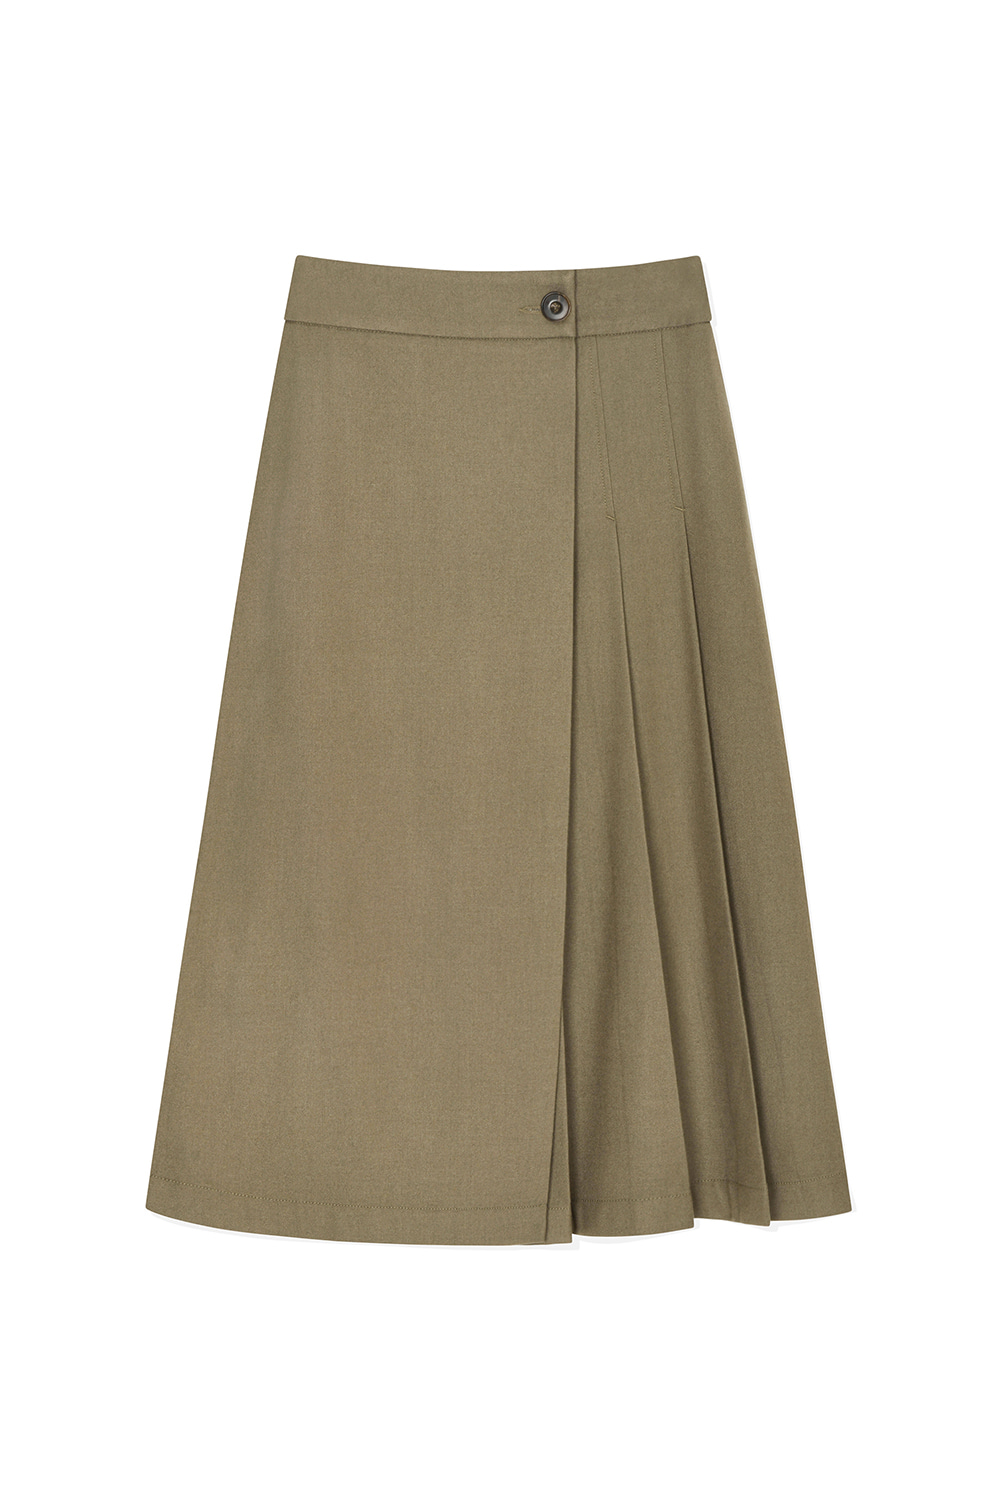 Wool Pleats Wrap Skirts Women JA [Sand Beige] -10%